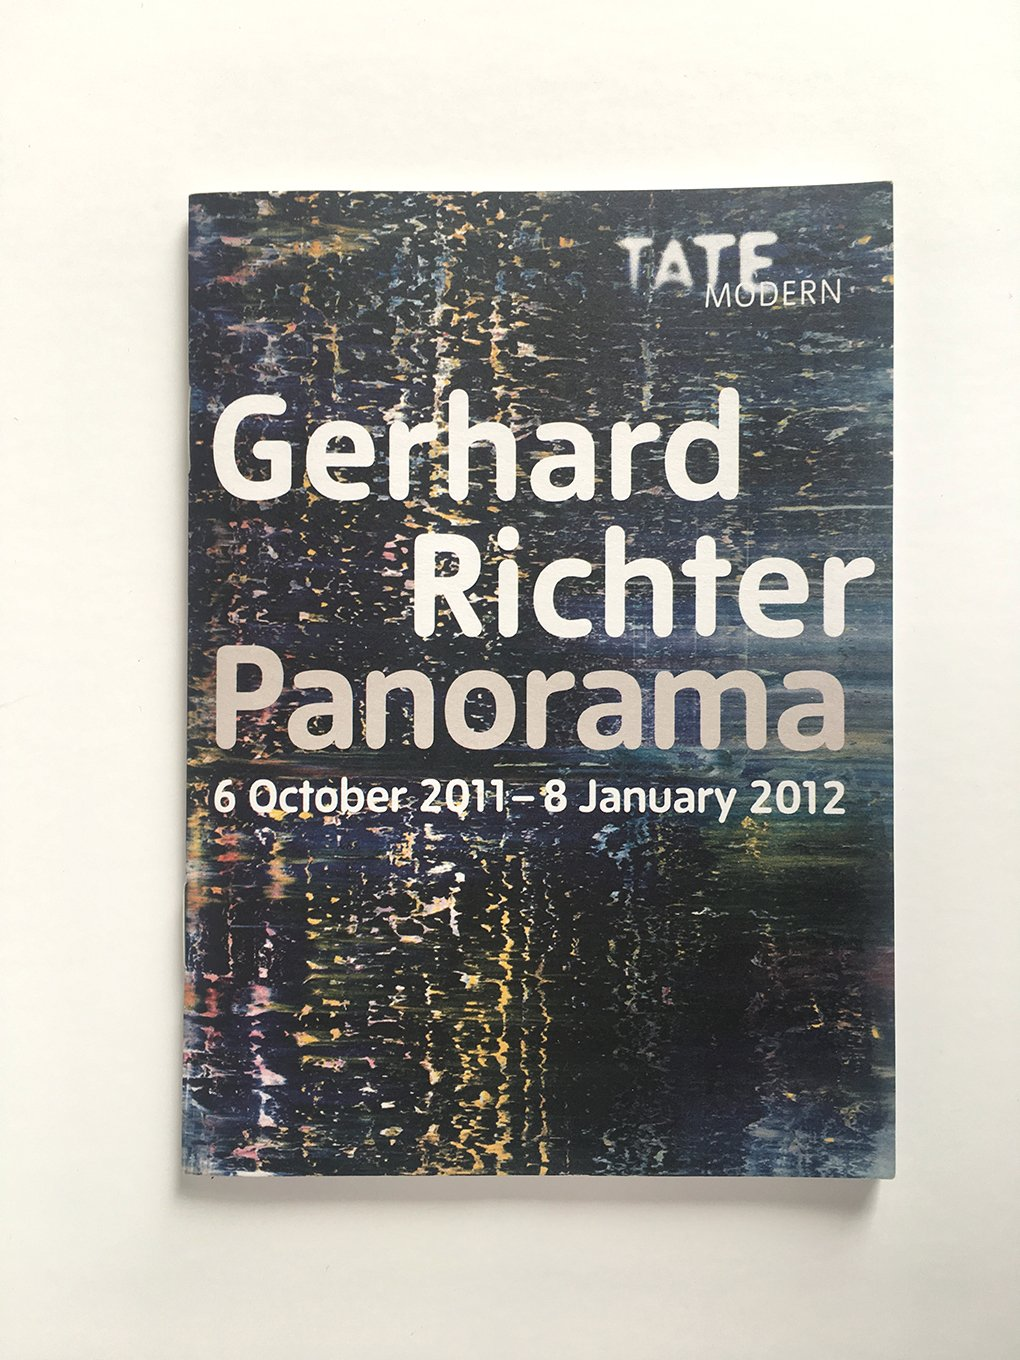 Gerhard Richter 'Panorama' at the Tate Modern, London - Exhibition guide